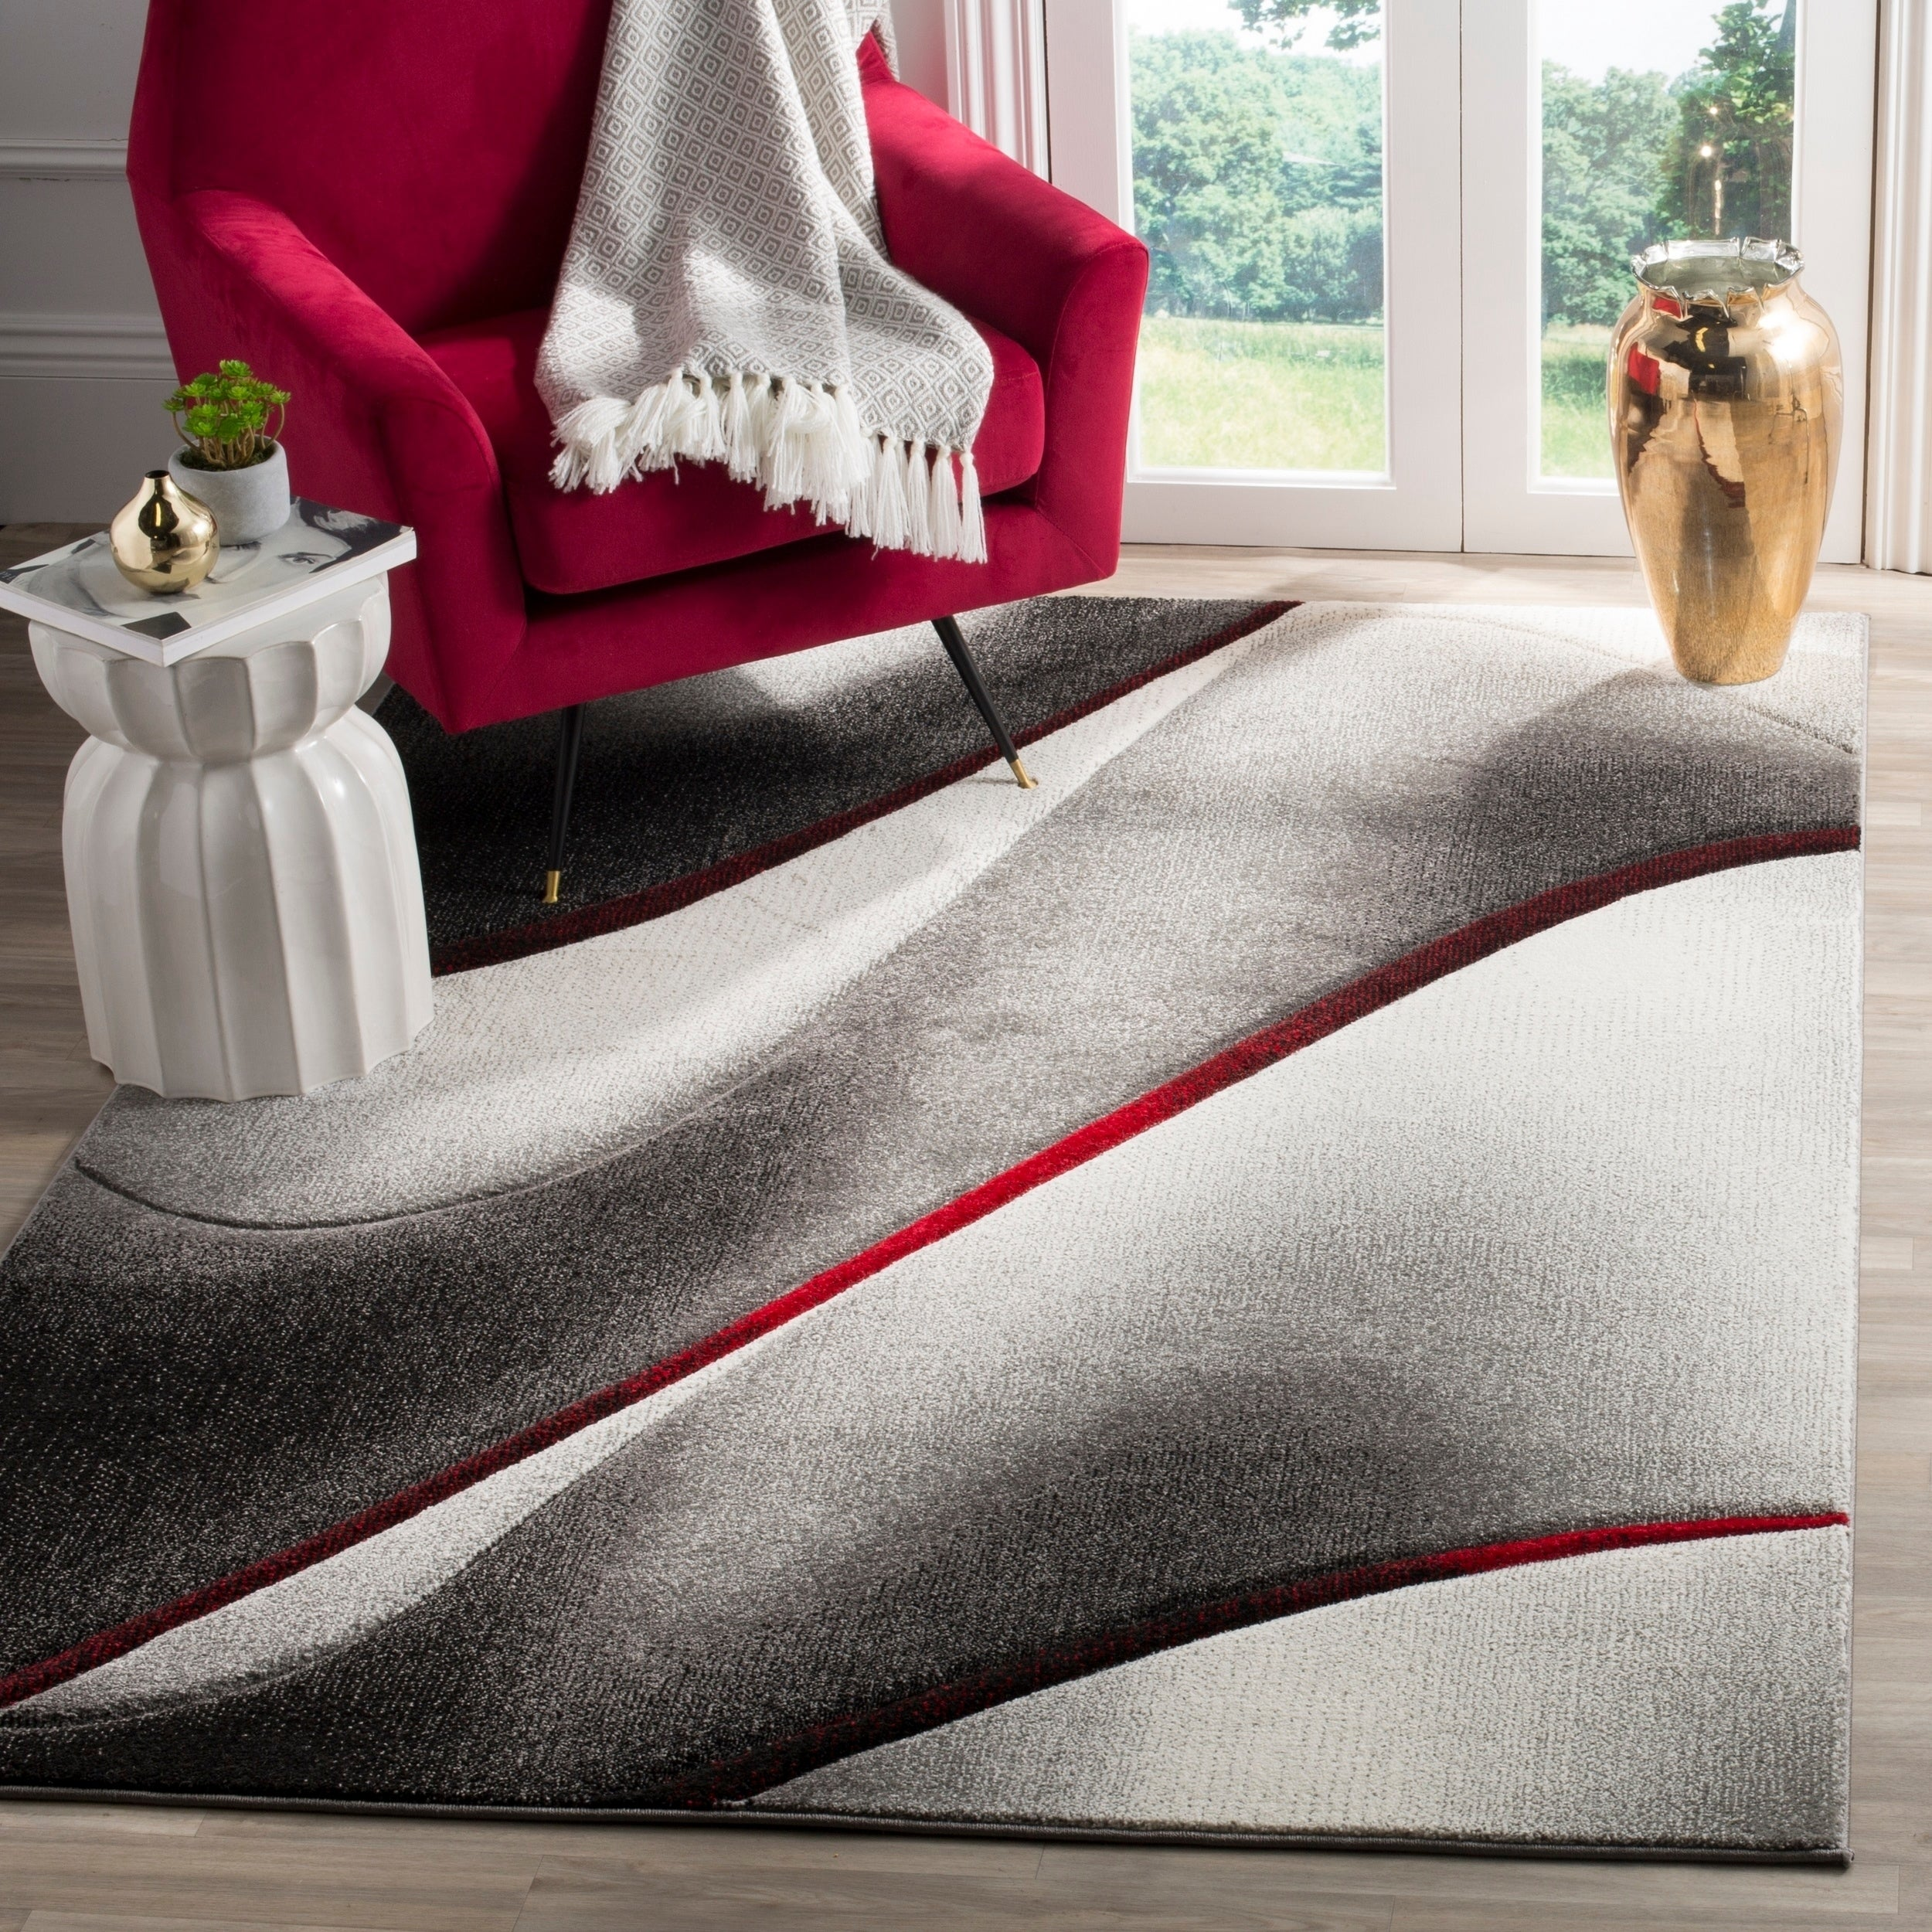 Safavieh Hollywood Grey Red Area Rug 5 3 X 7 6 On Free Shipping Today 15198925